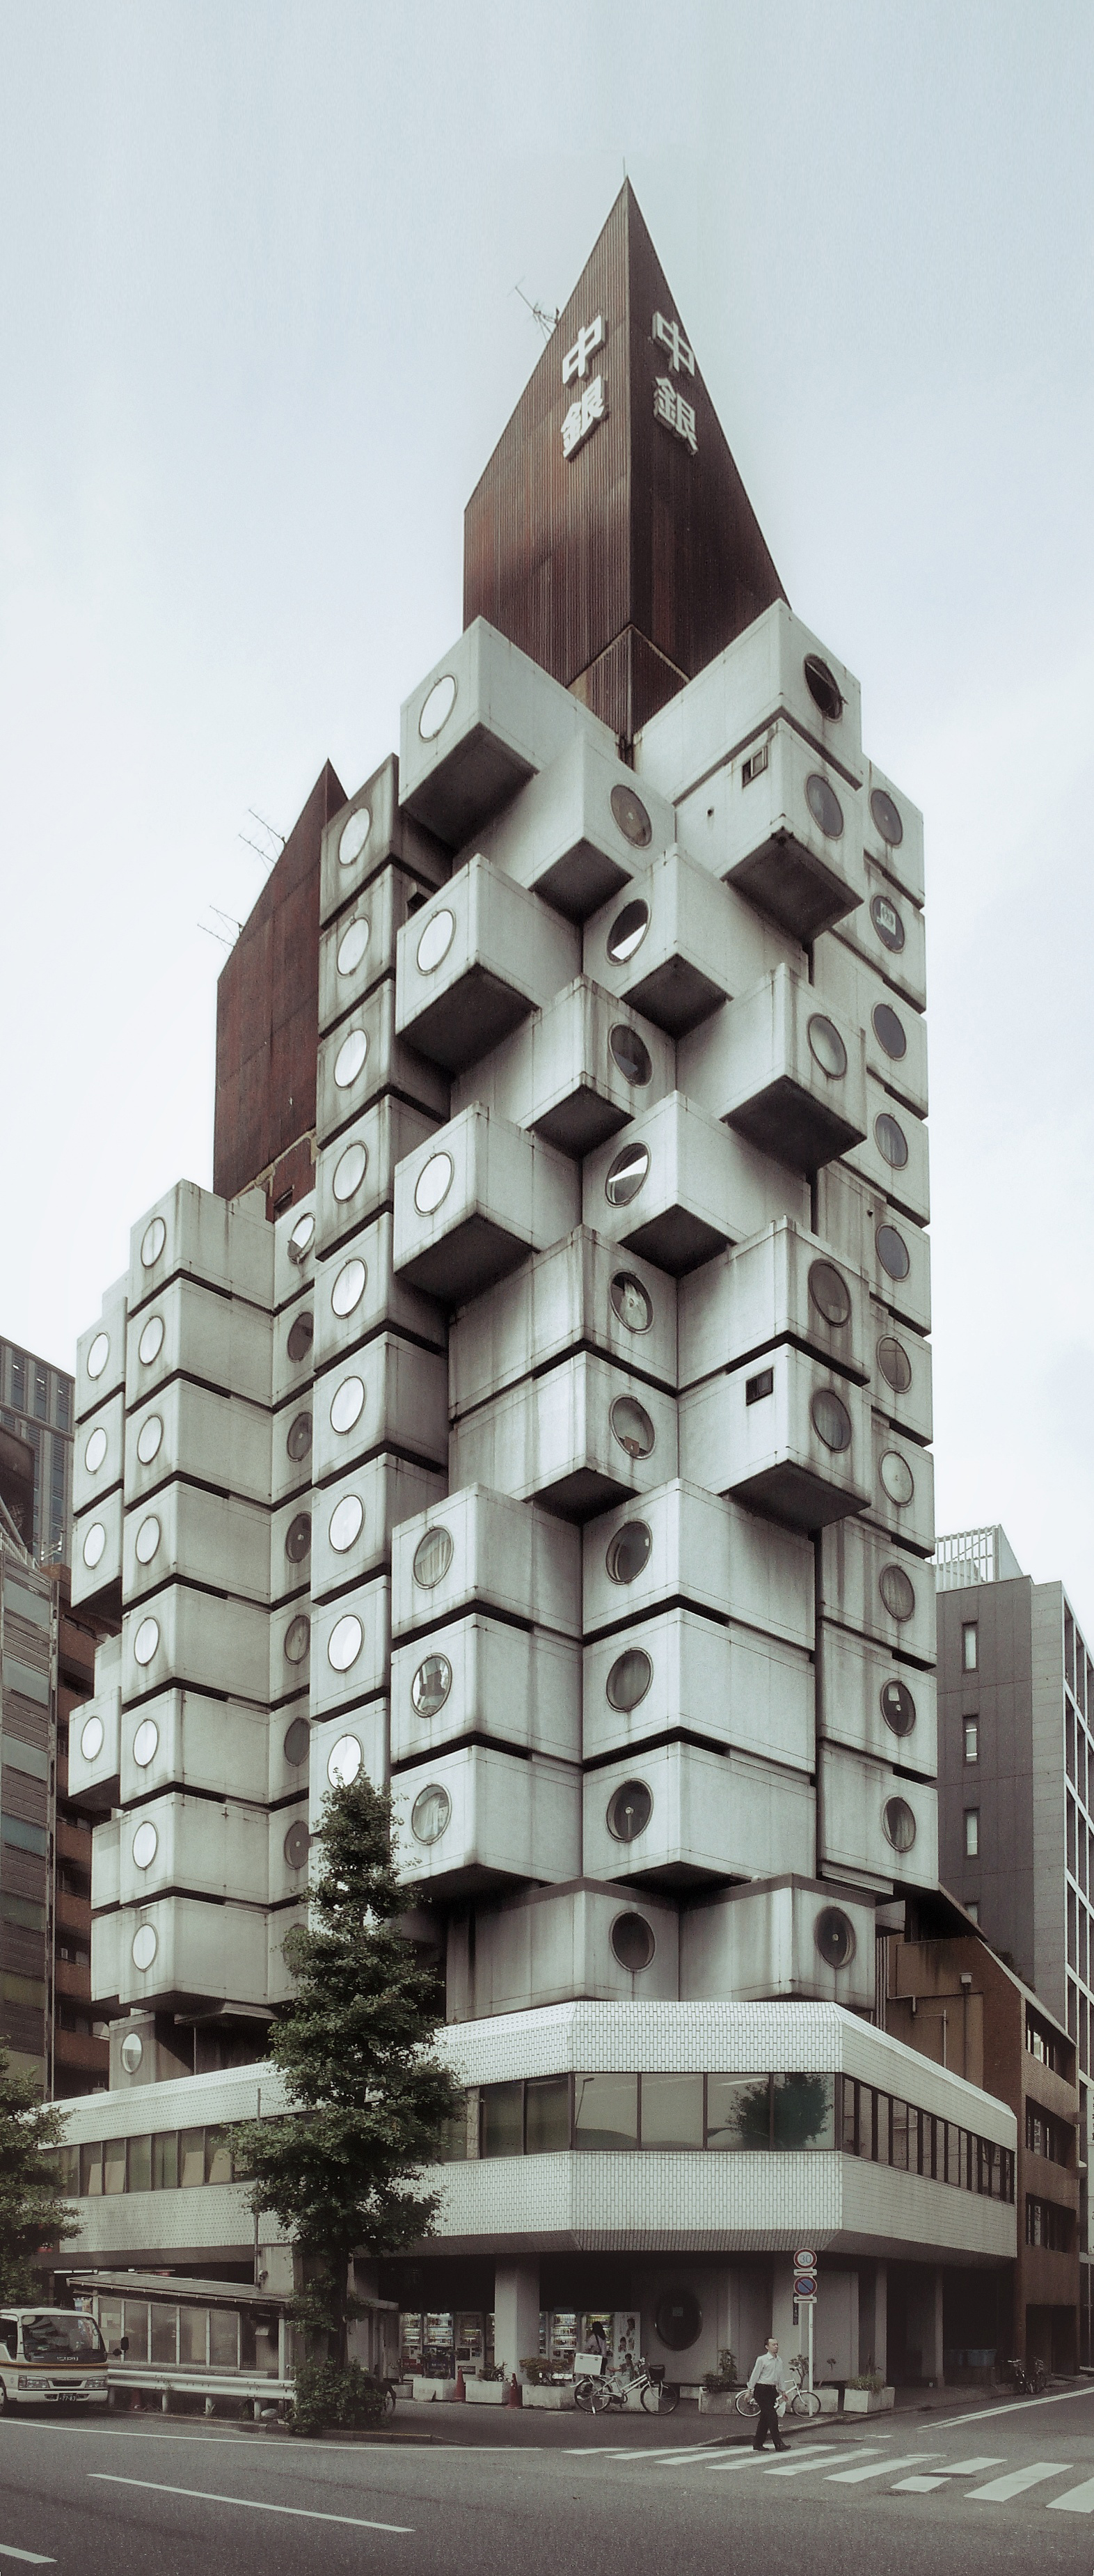 Tokyo nakagin capsule tower on inspirationde for Architecture tokyo